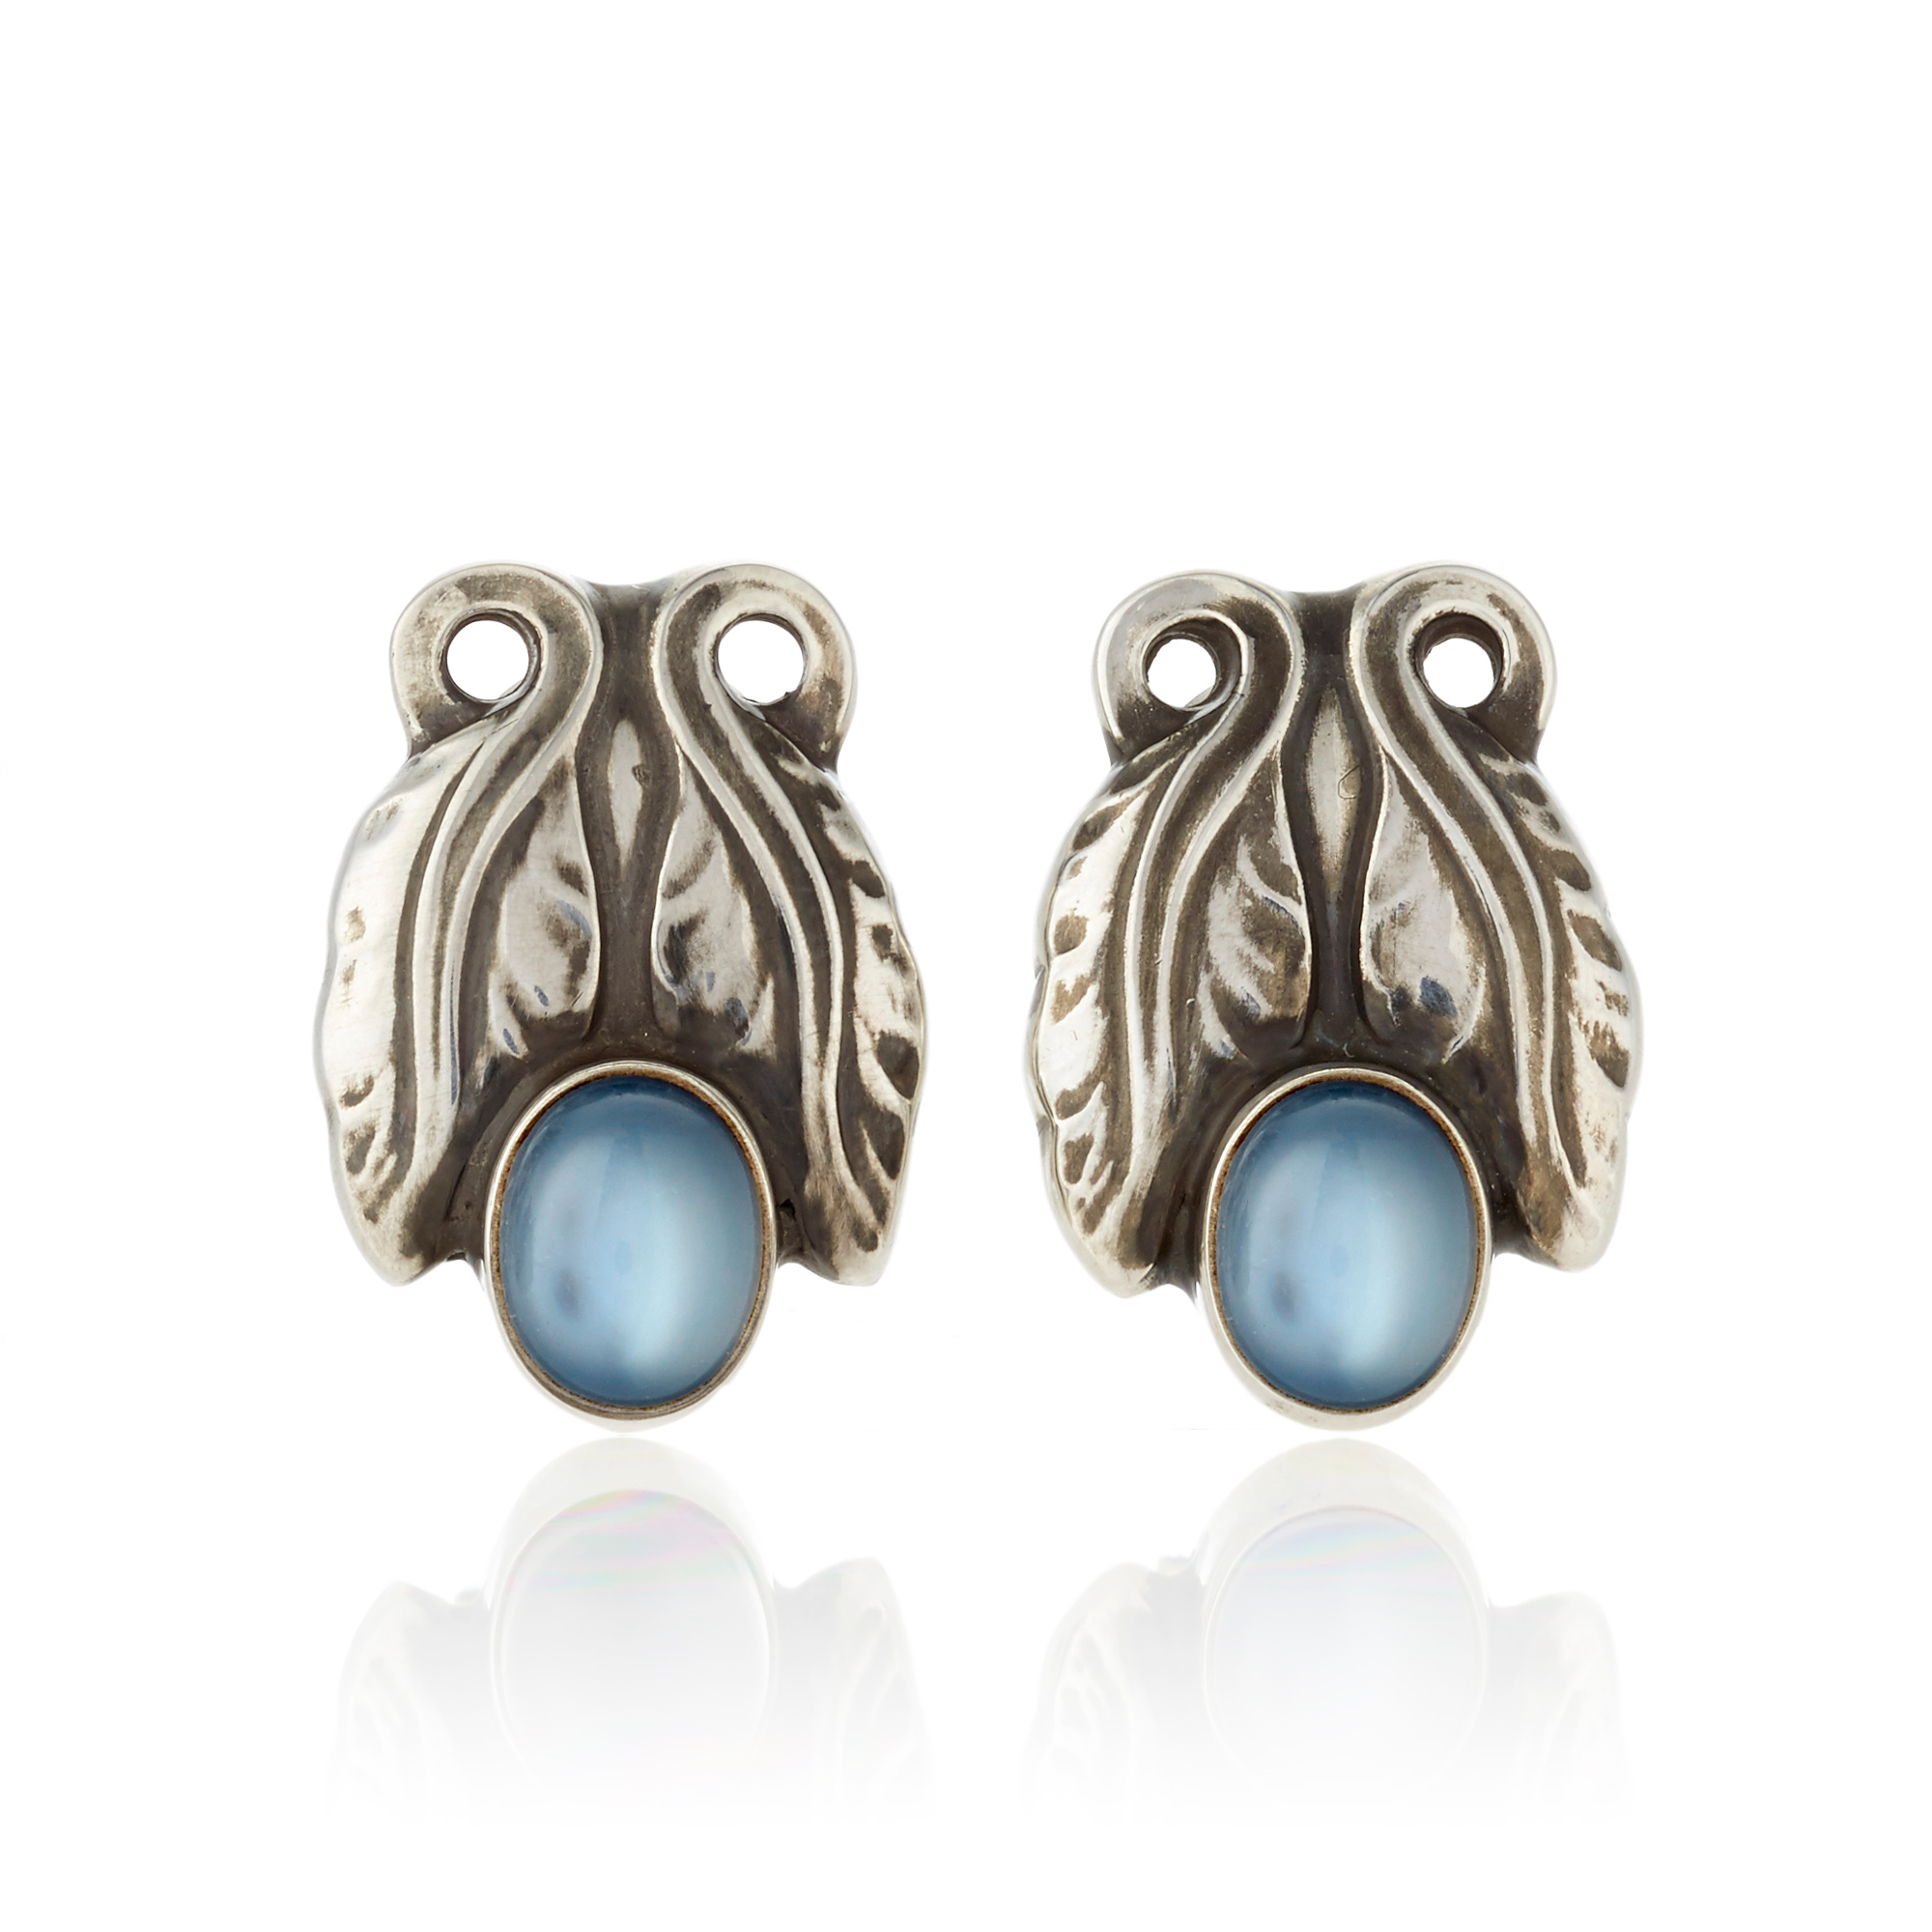 Georg Jensen Moonlight Blossom Moonstone & Sterling Silver Earclips